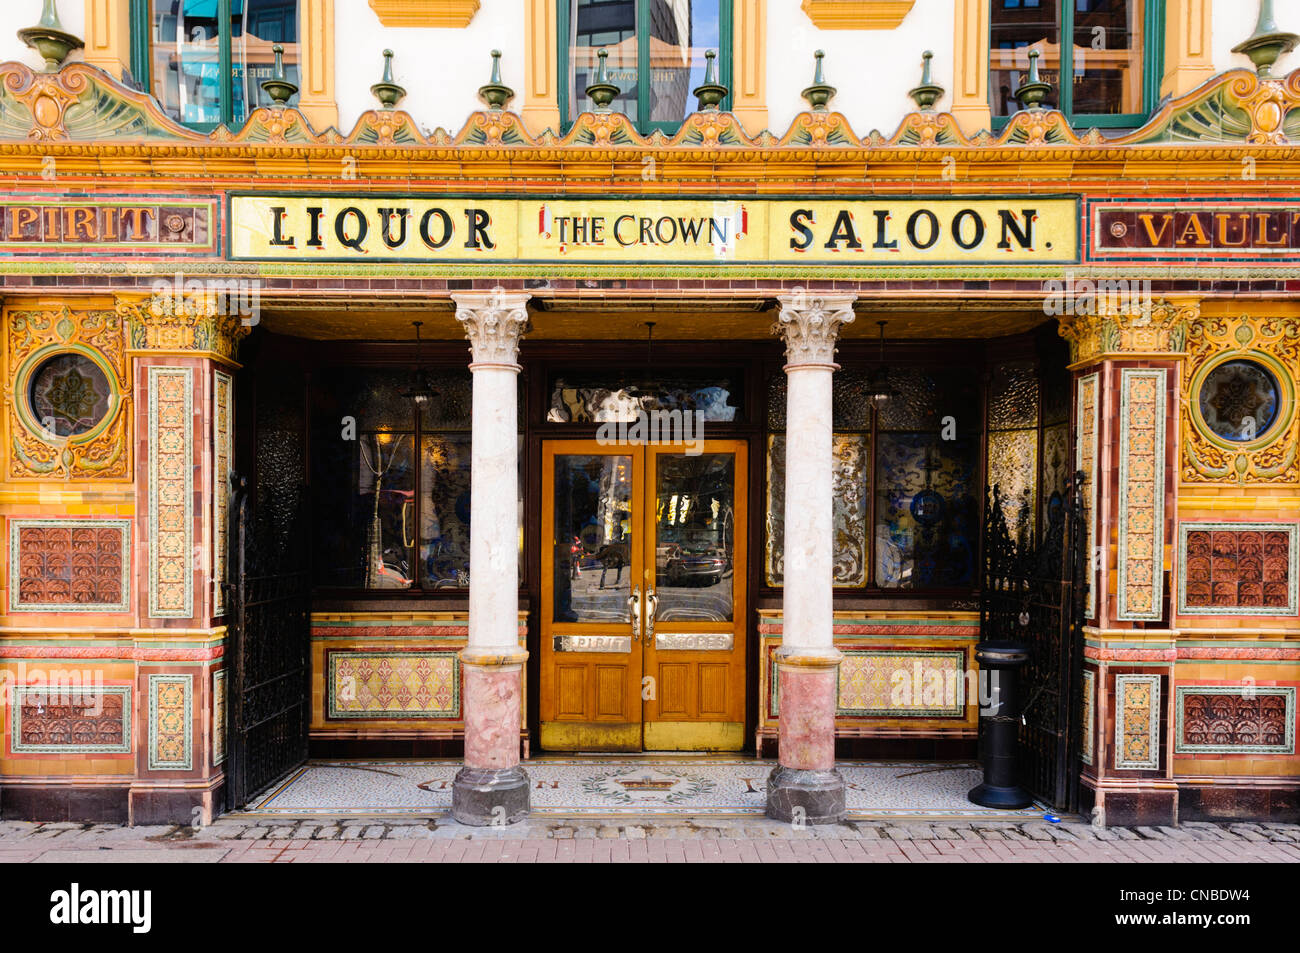 The Crown Bar, Belfast, one of the most famous bars in the world.  Owned by the National Trust. - Stock Image